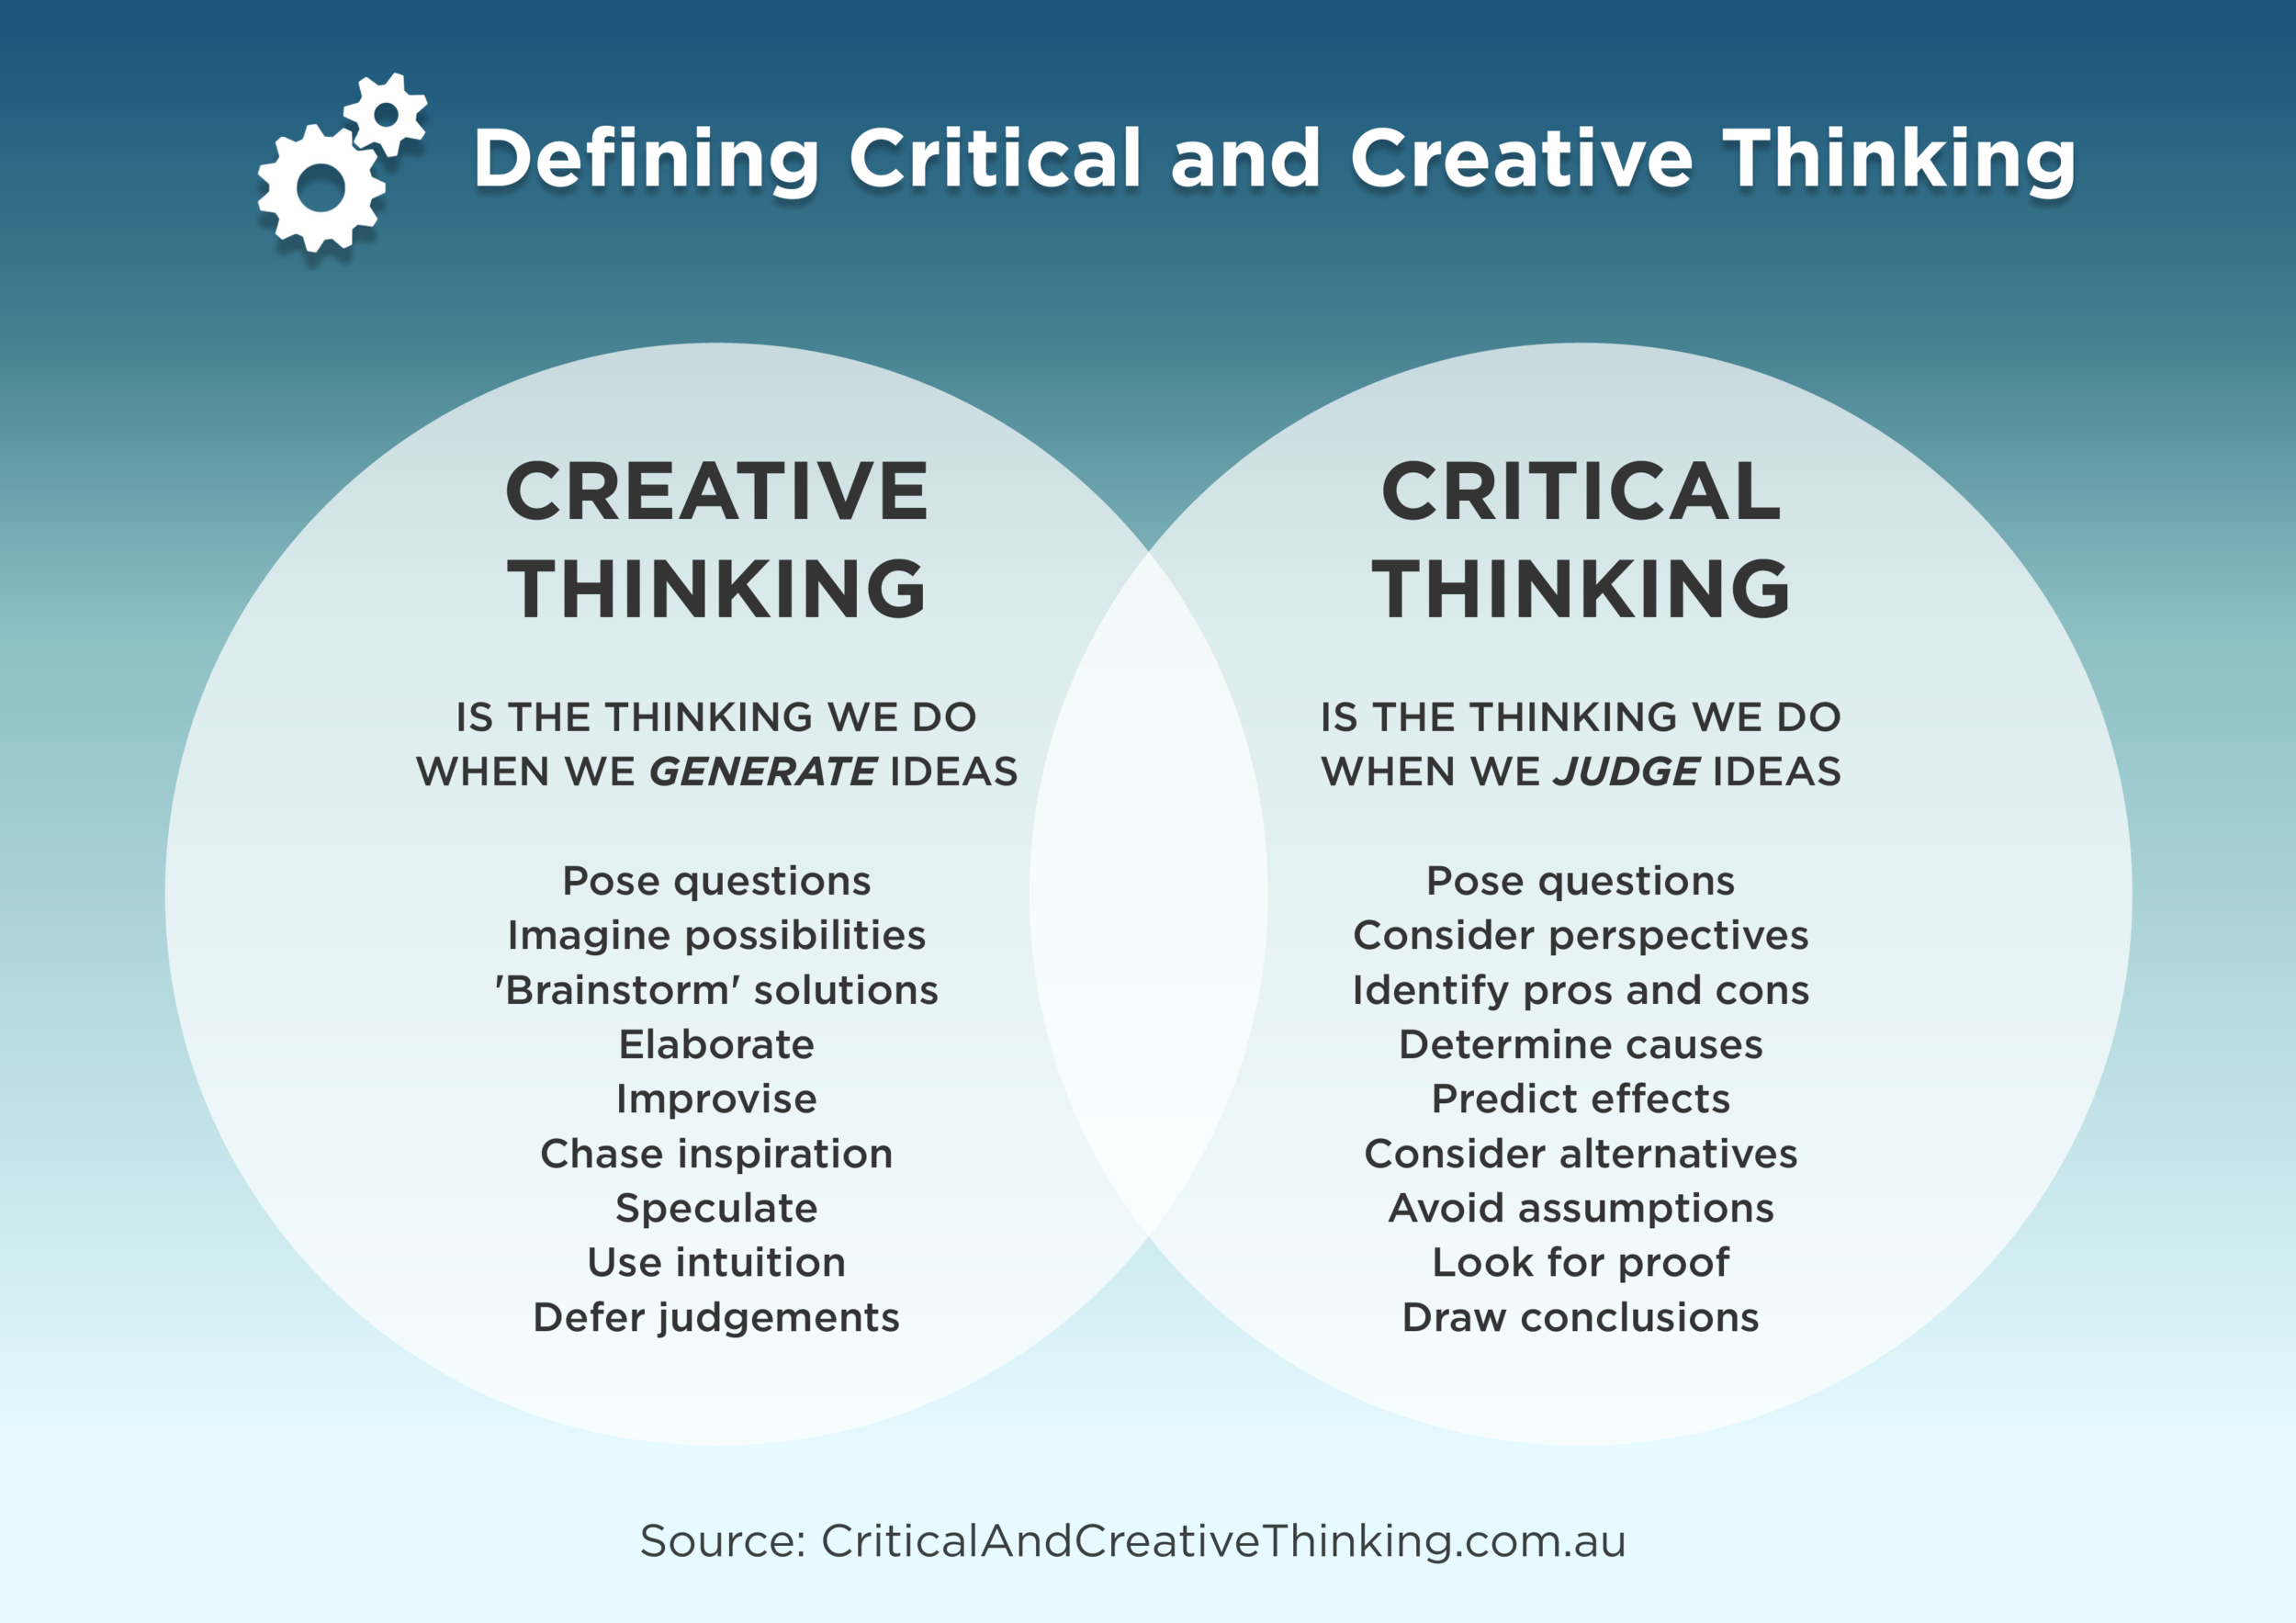 What is the difference between creative thinking and critical thinking?